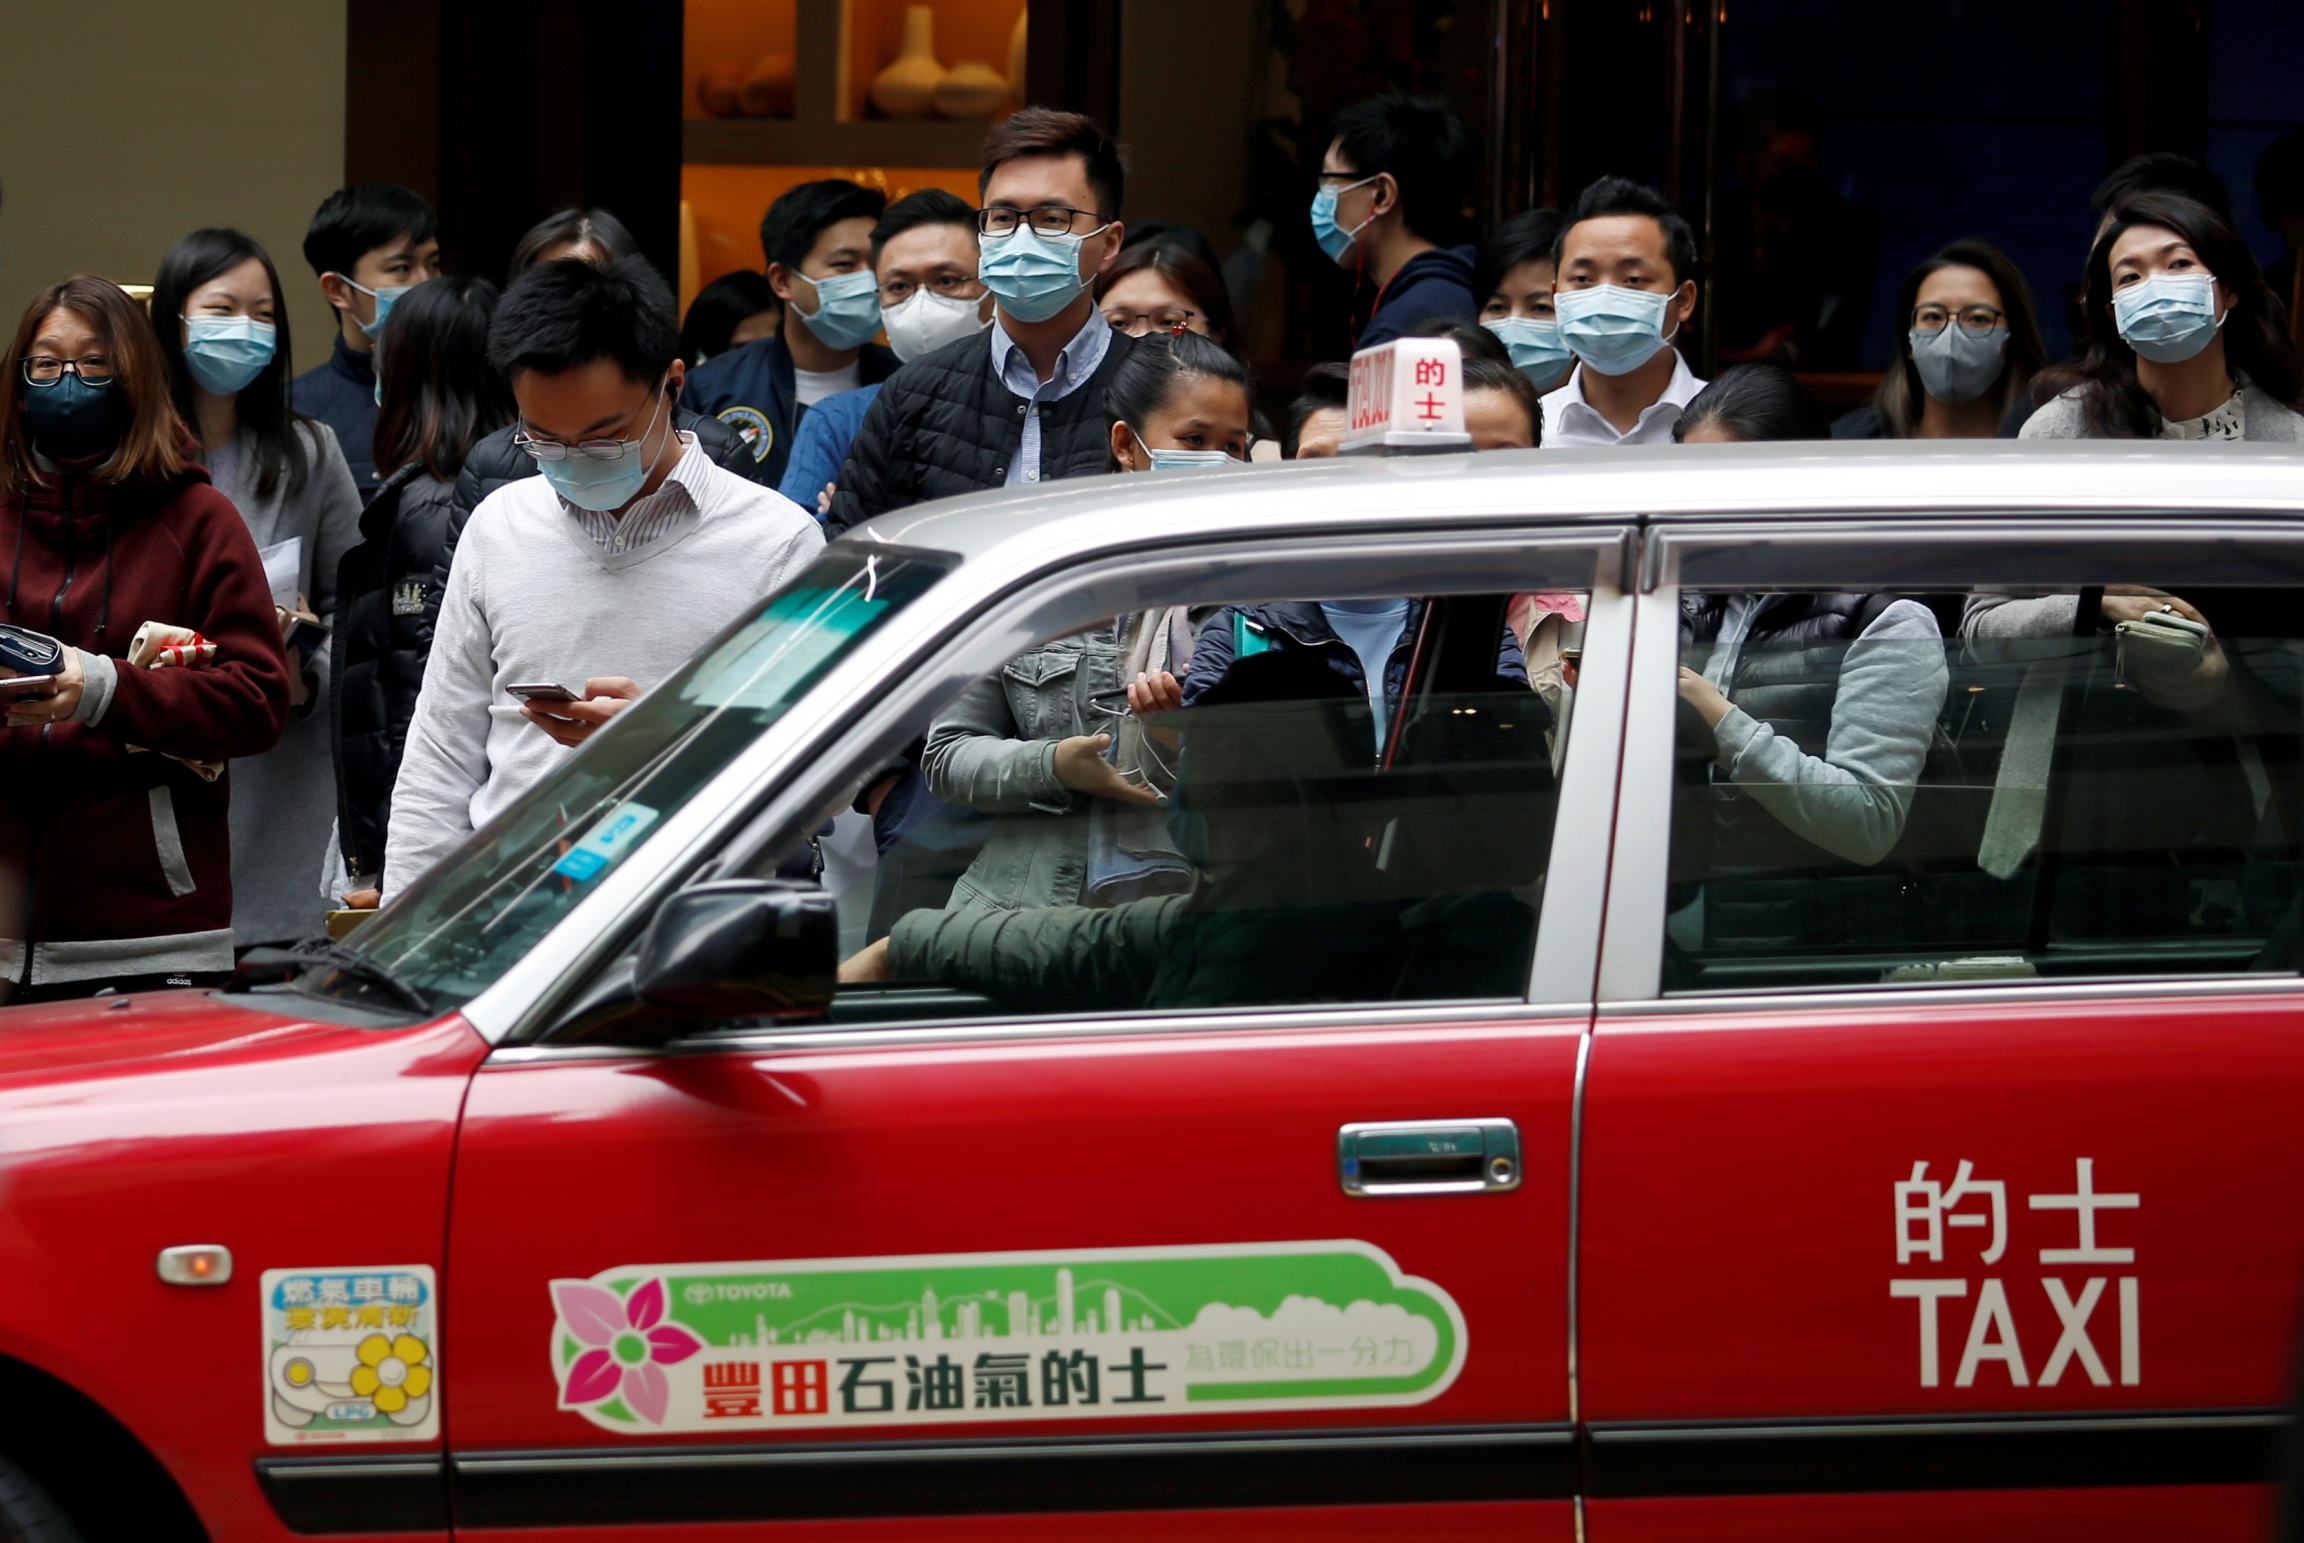 People wear masks on crowded street in Hong Kong